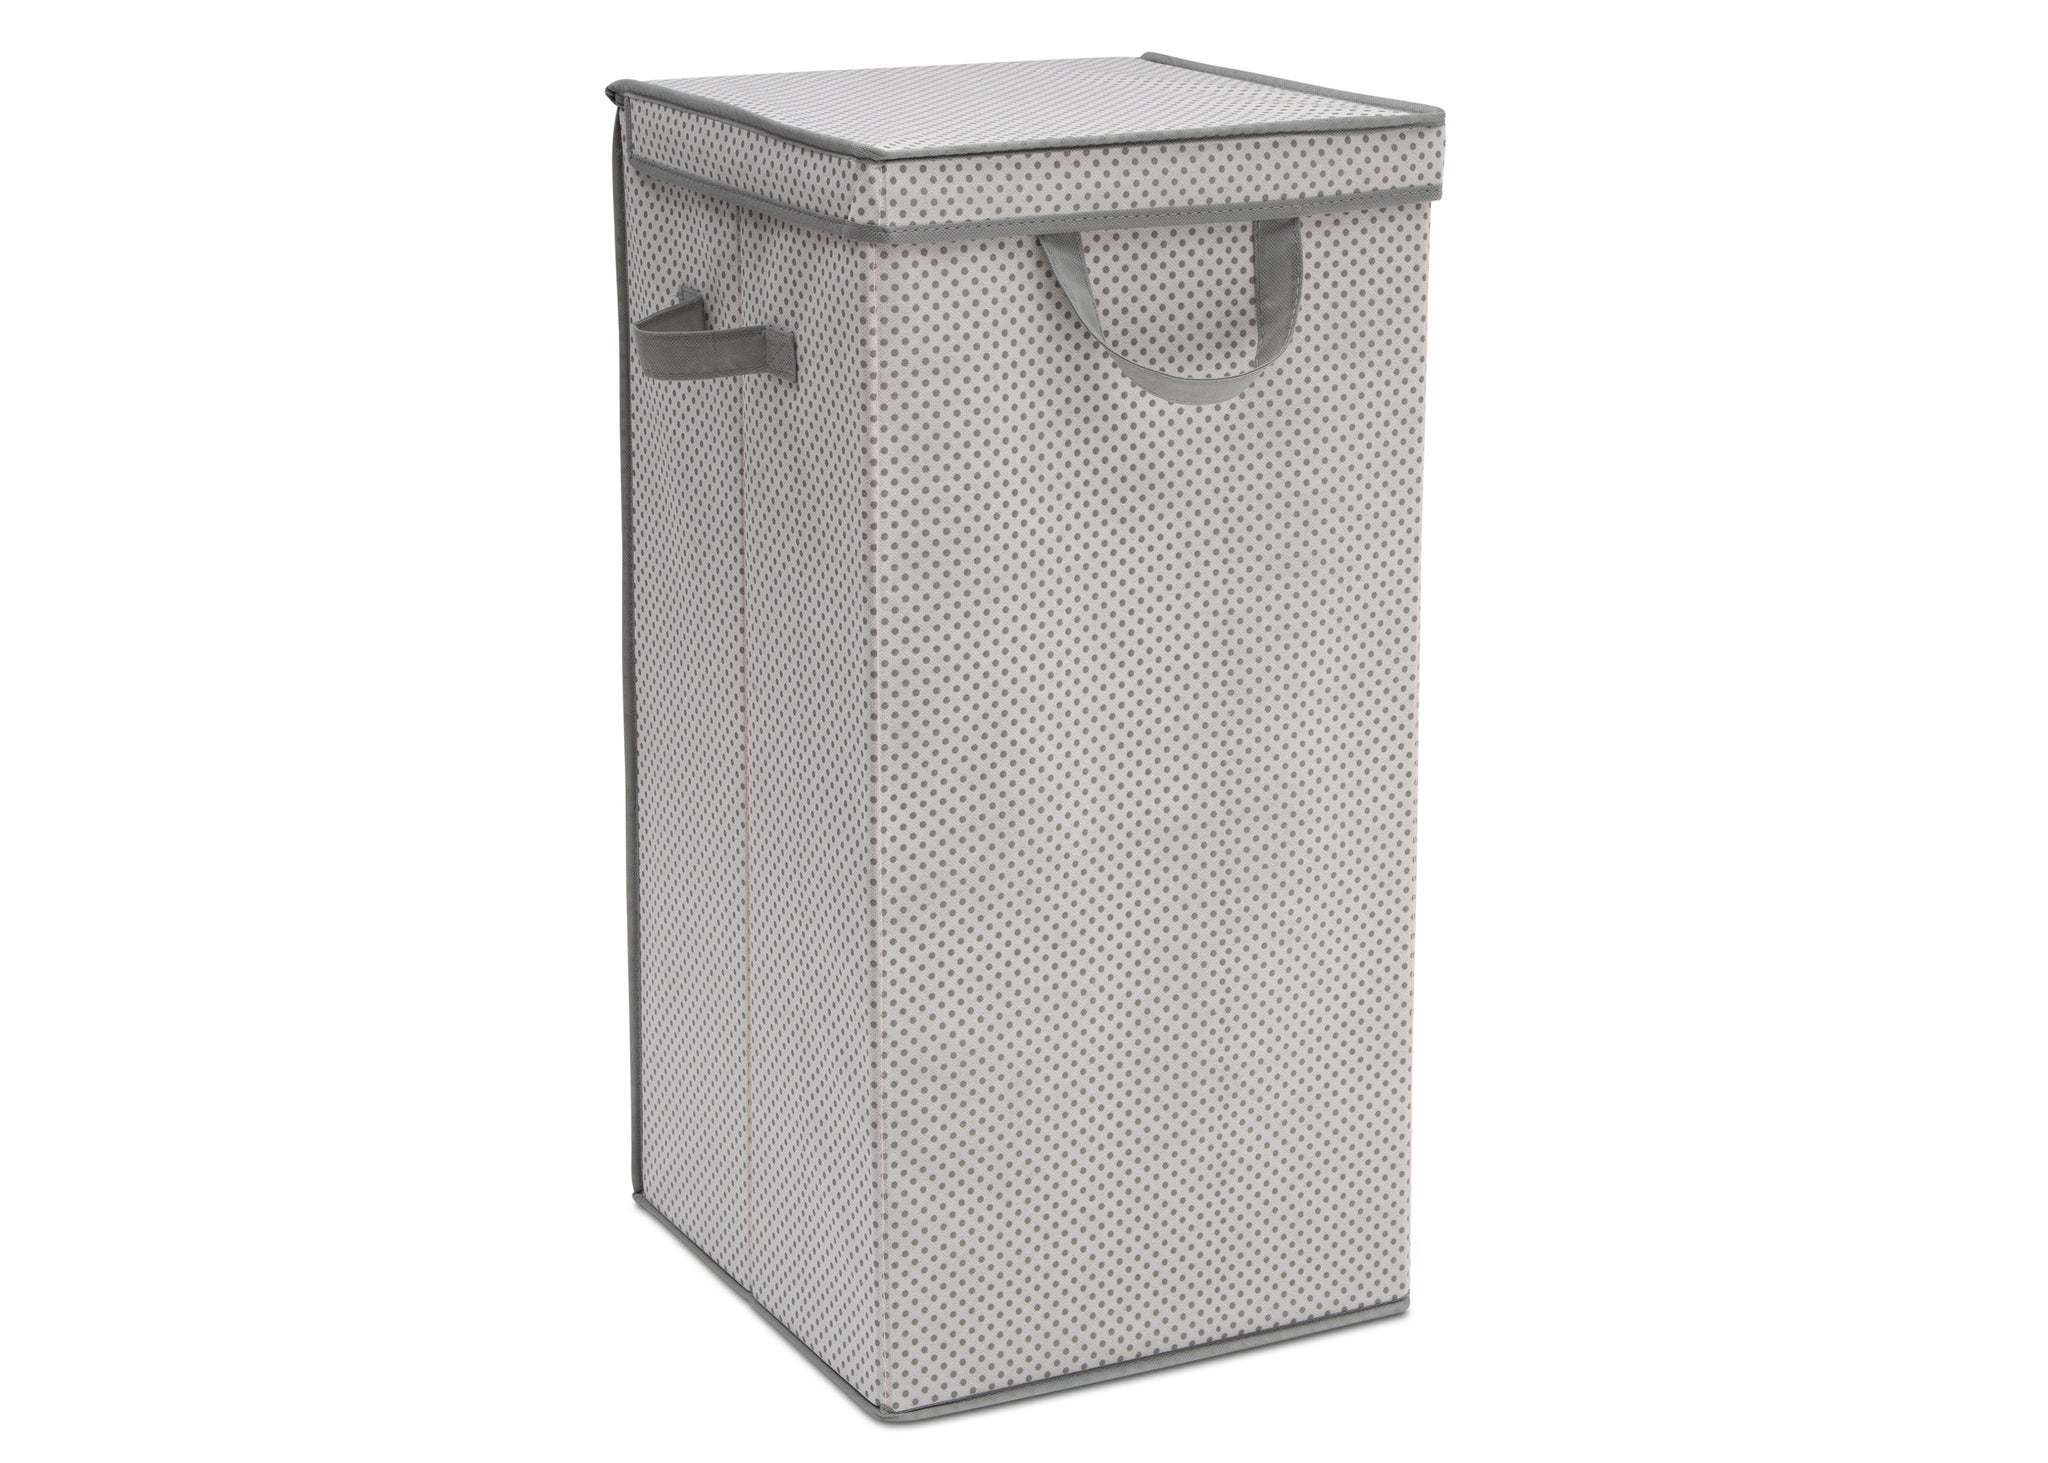 Delta Children Infinity Grey (063) Tall Nursery Clothing Hamper (SS2298), Right Silo, a1a